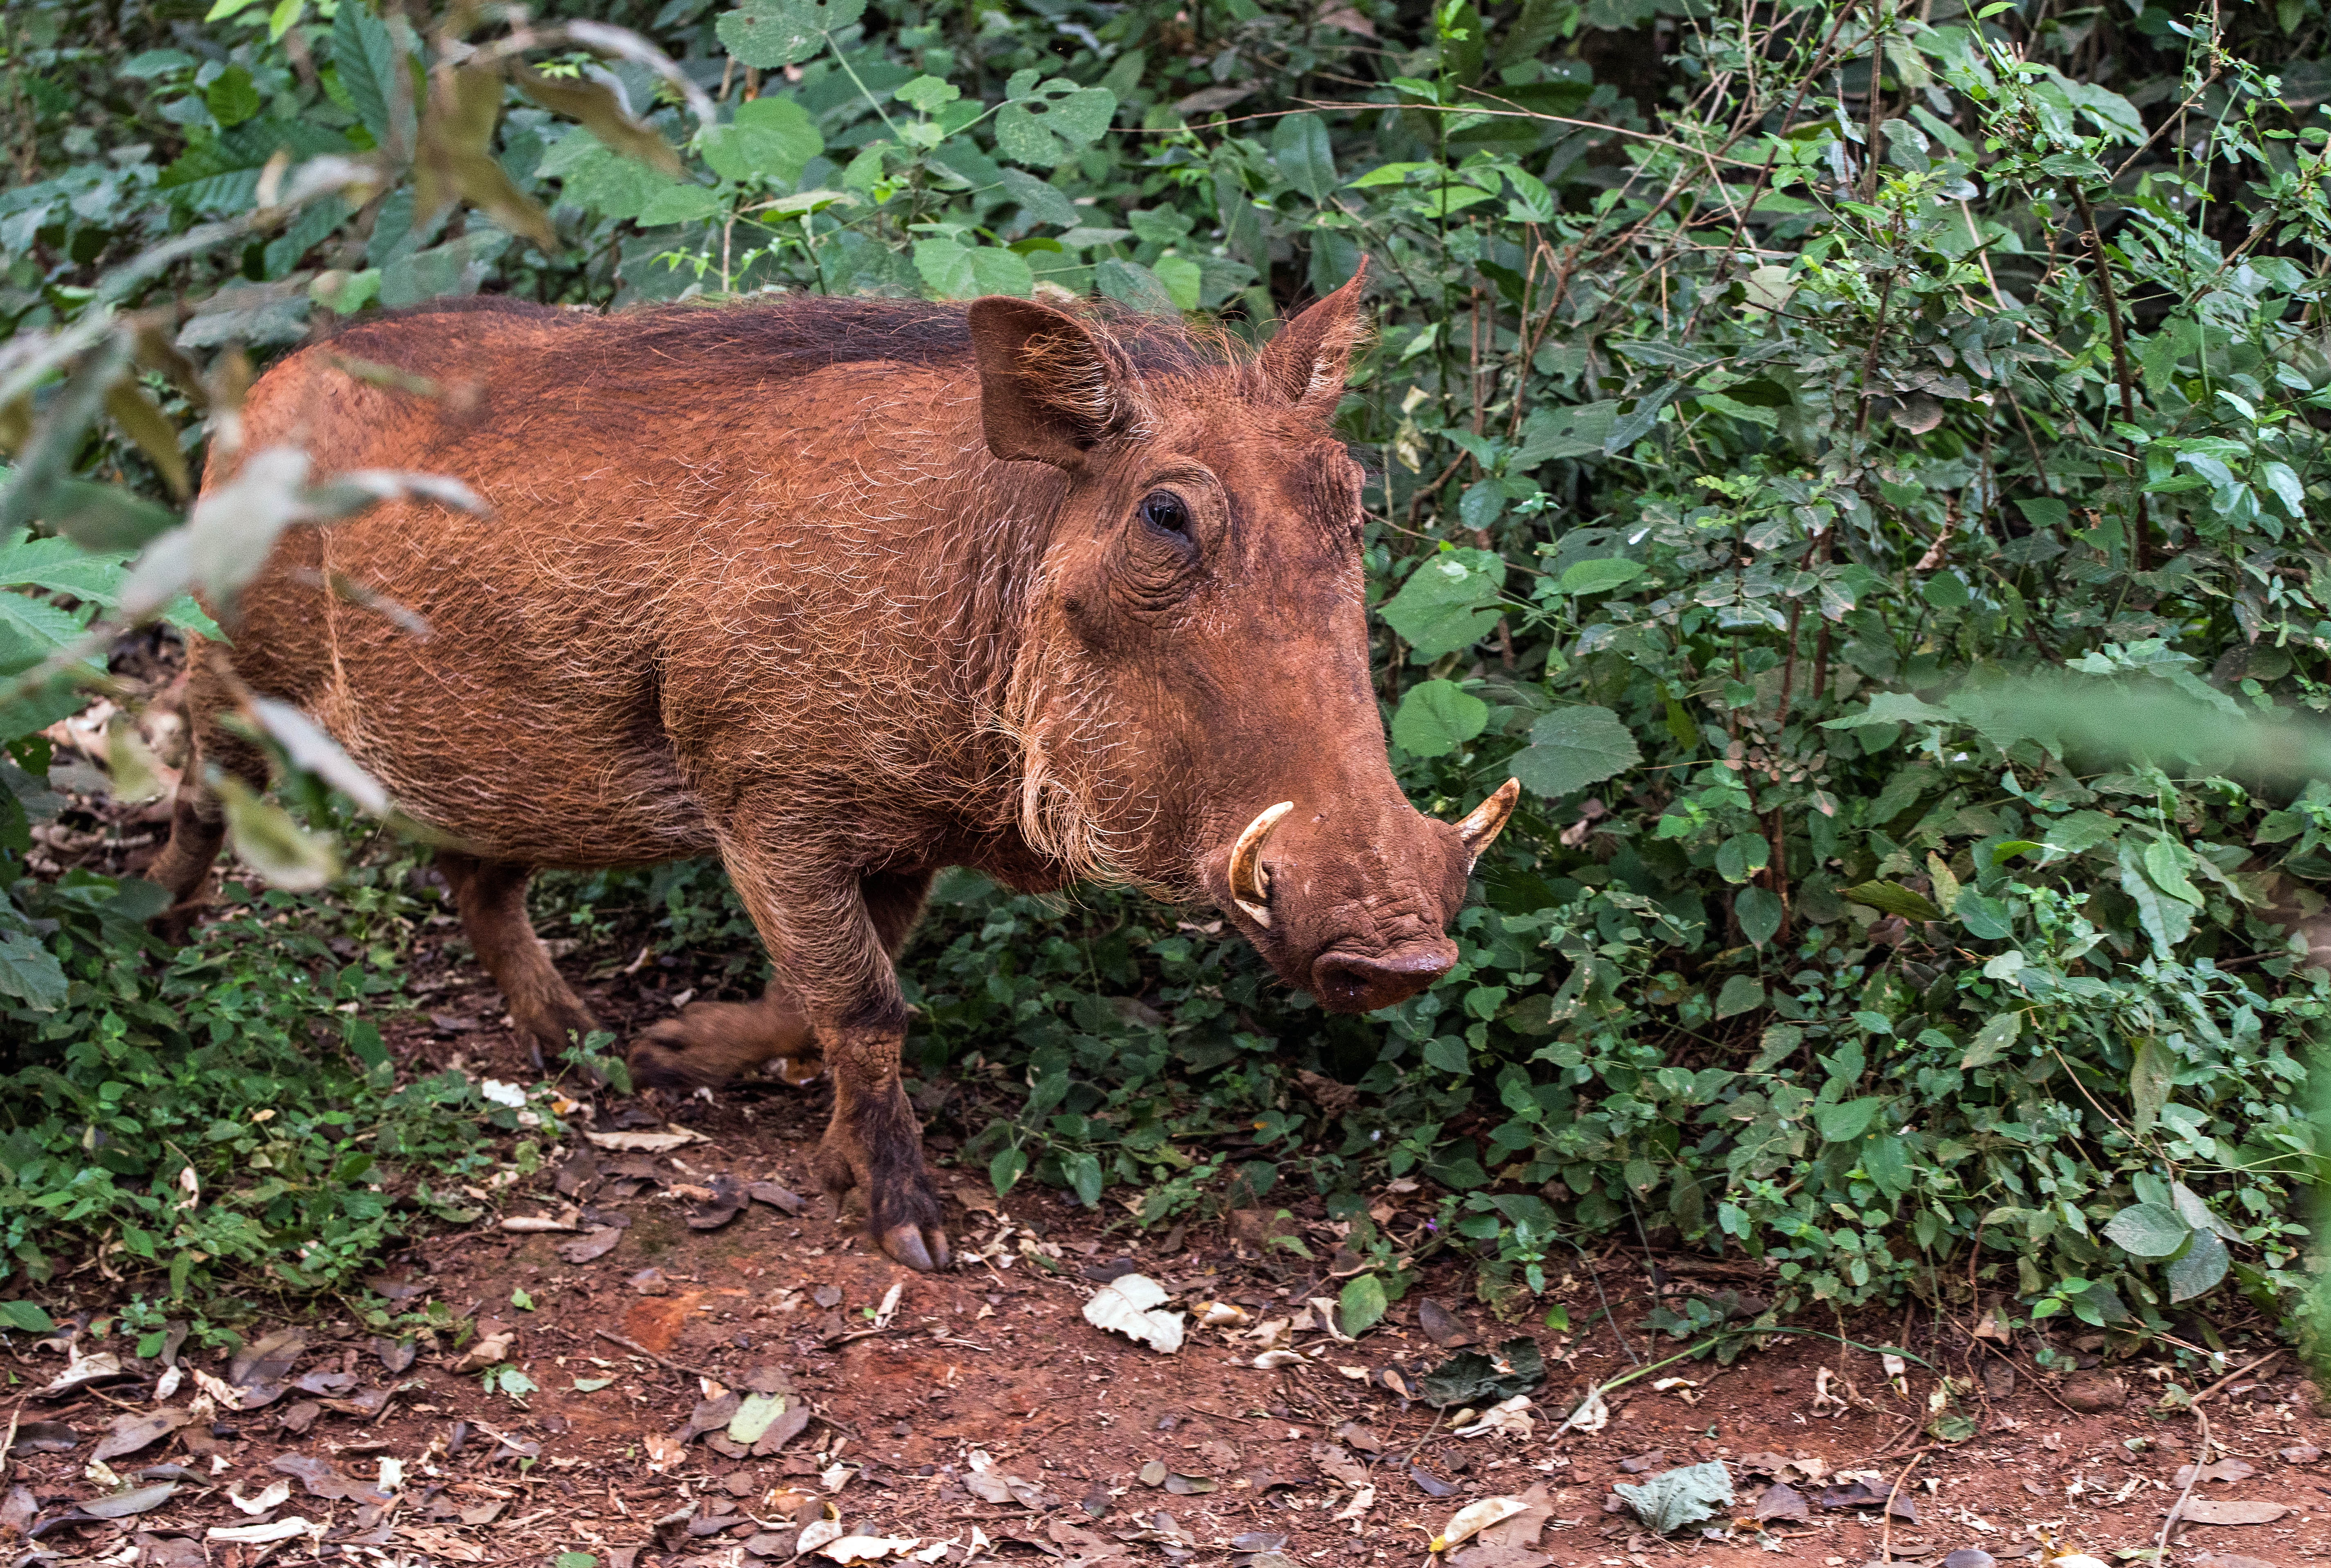 Feral Hog Management Program to Continue in Hays County